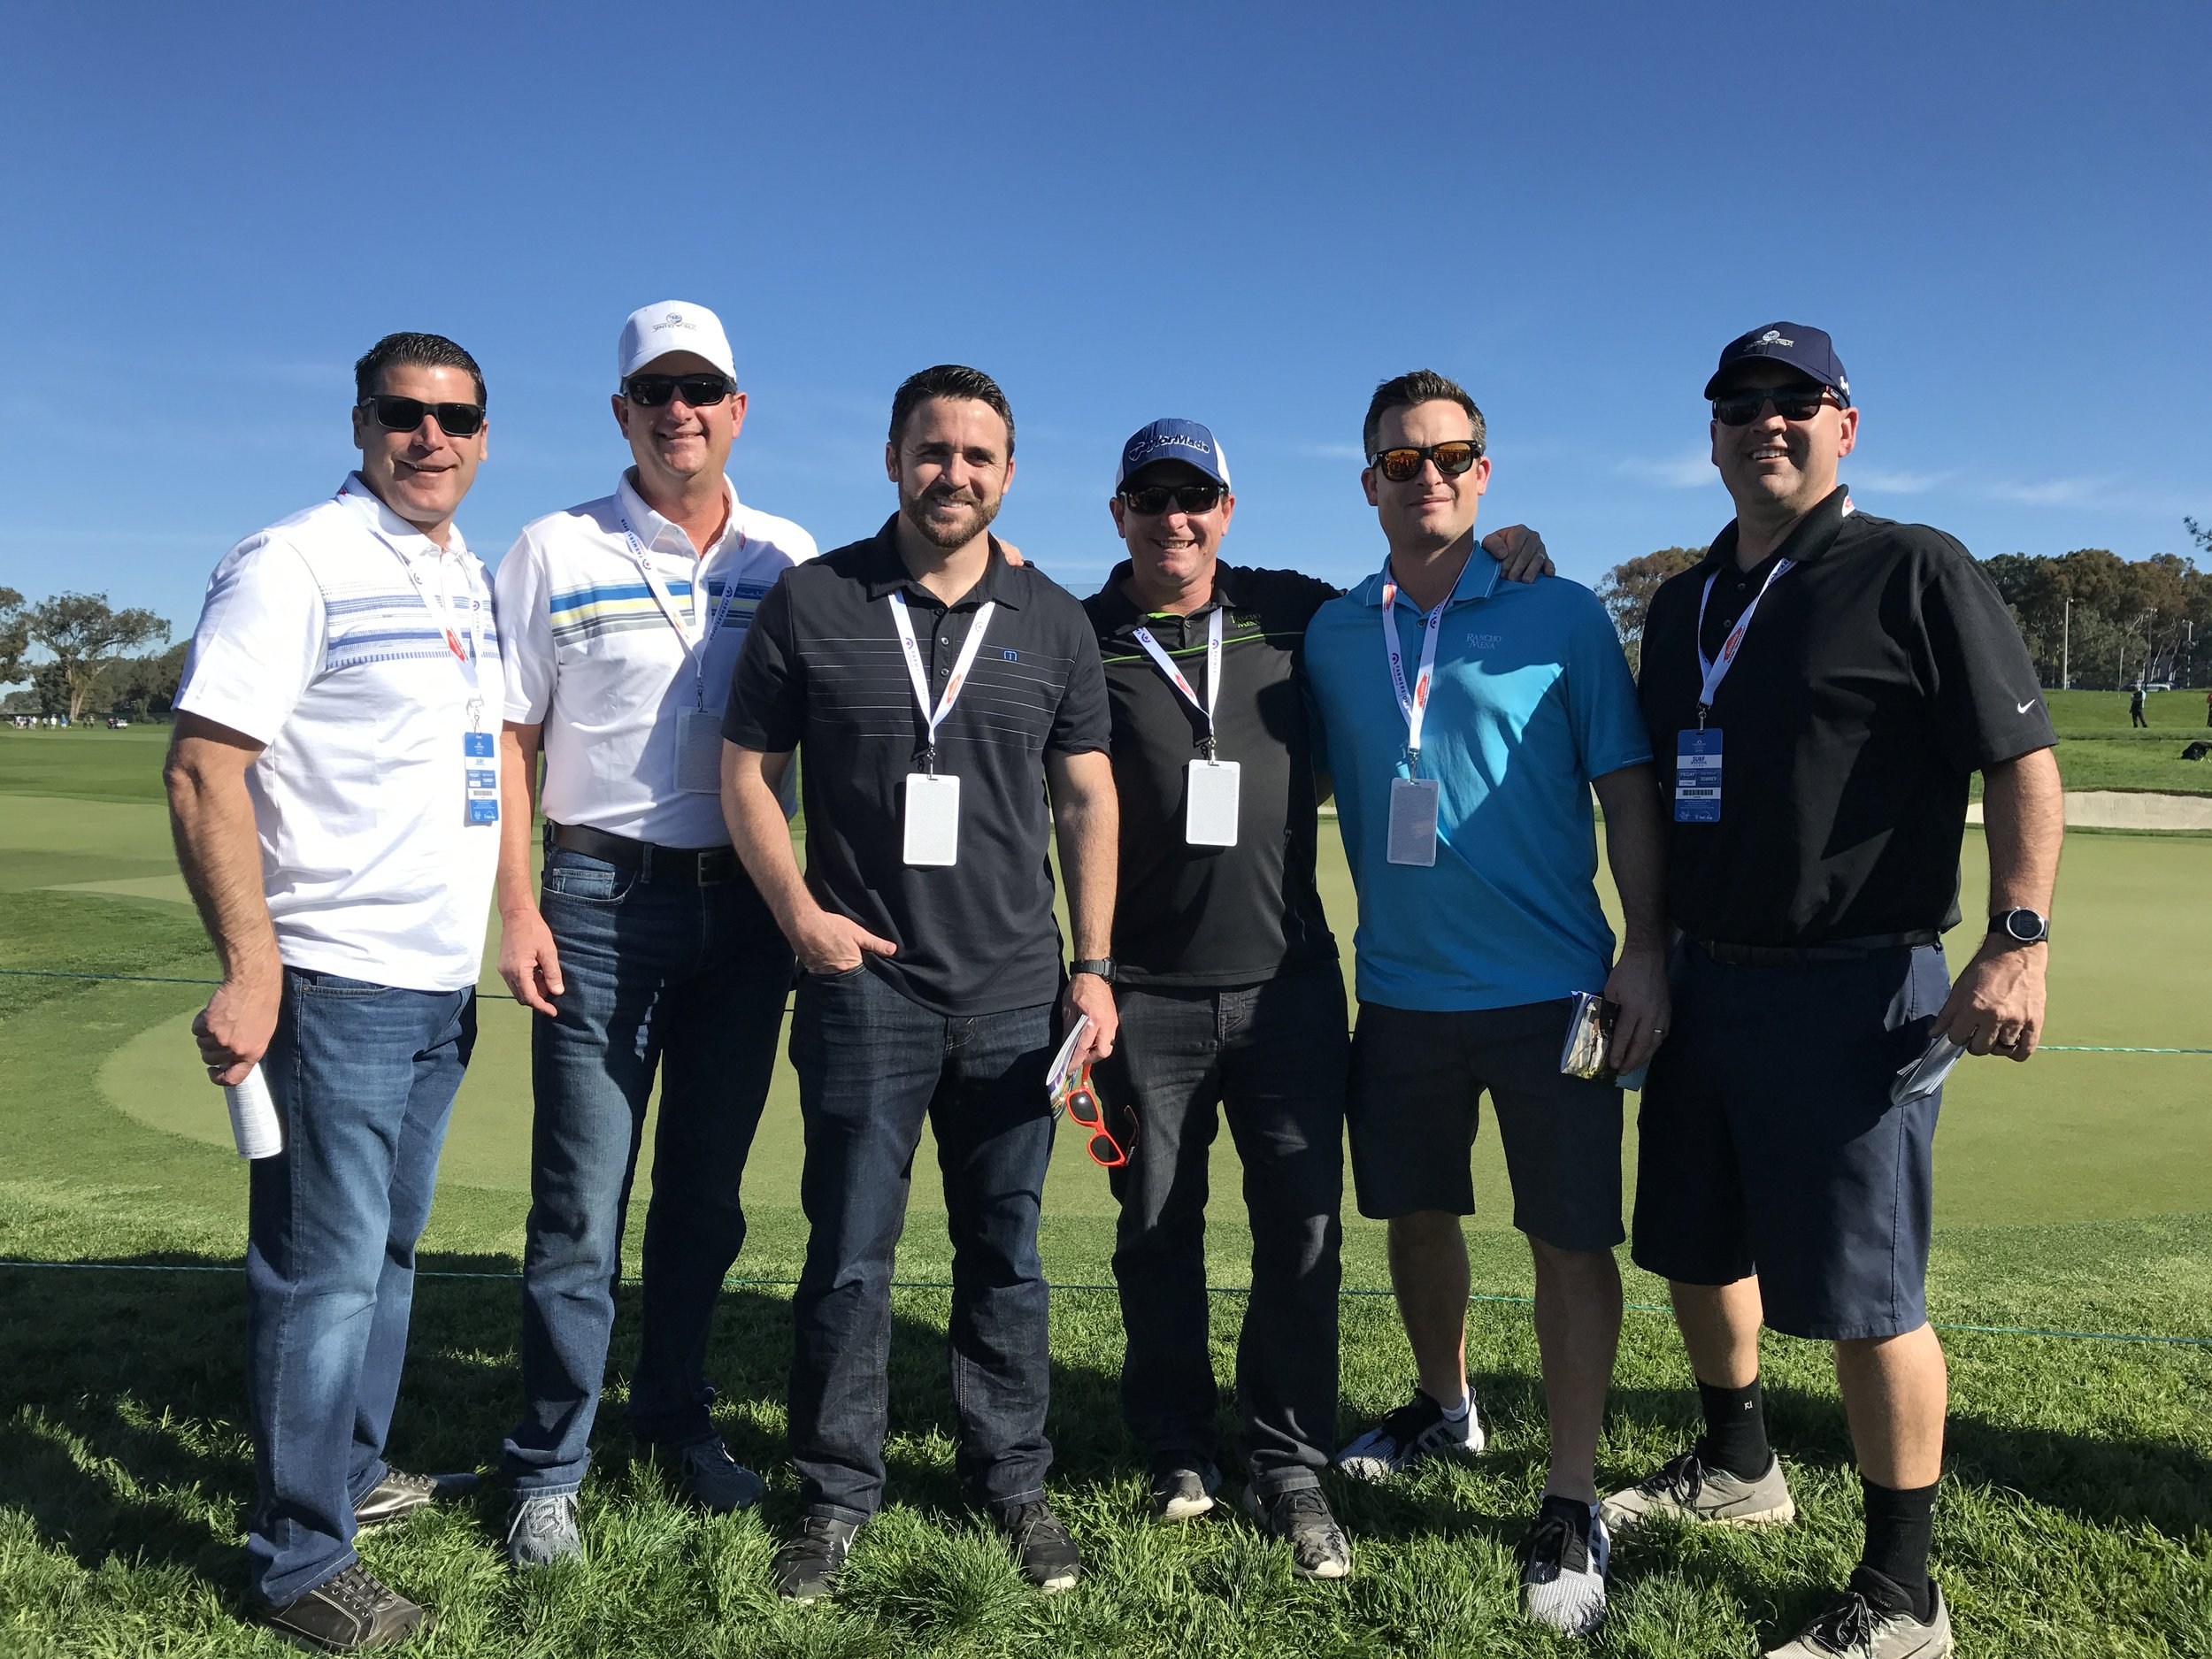 Pictured from left to right: Sam Clayton; John Fischel, West Coast Regional Executive; Chase Hixson; Jeremy Hoolihan; Kevin Howard; and Nic Hernandez, West Coast Underwriting Manager for Sentry.